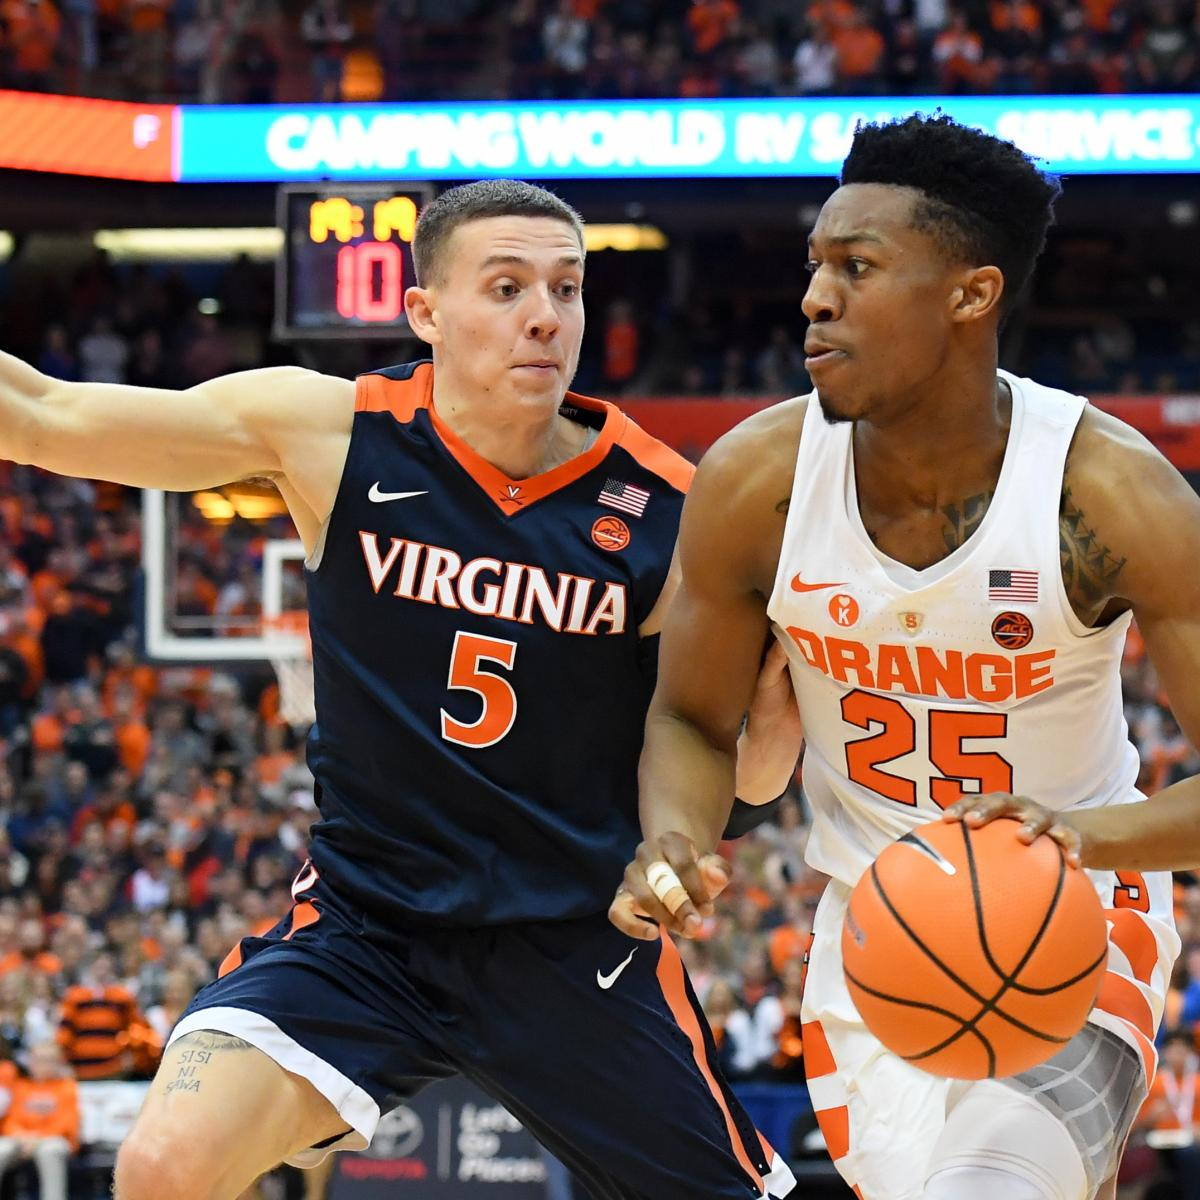 2018 NCAA Tournament Bracket: Latest Projection of the Field of 68